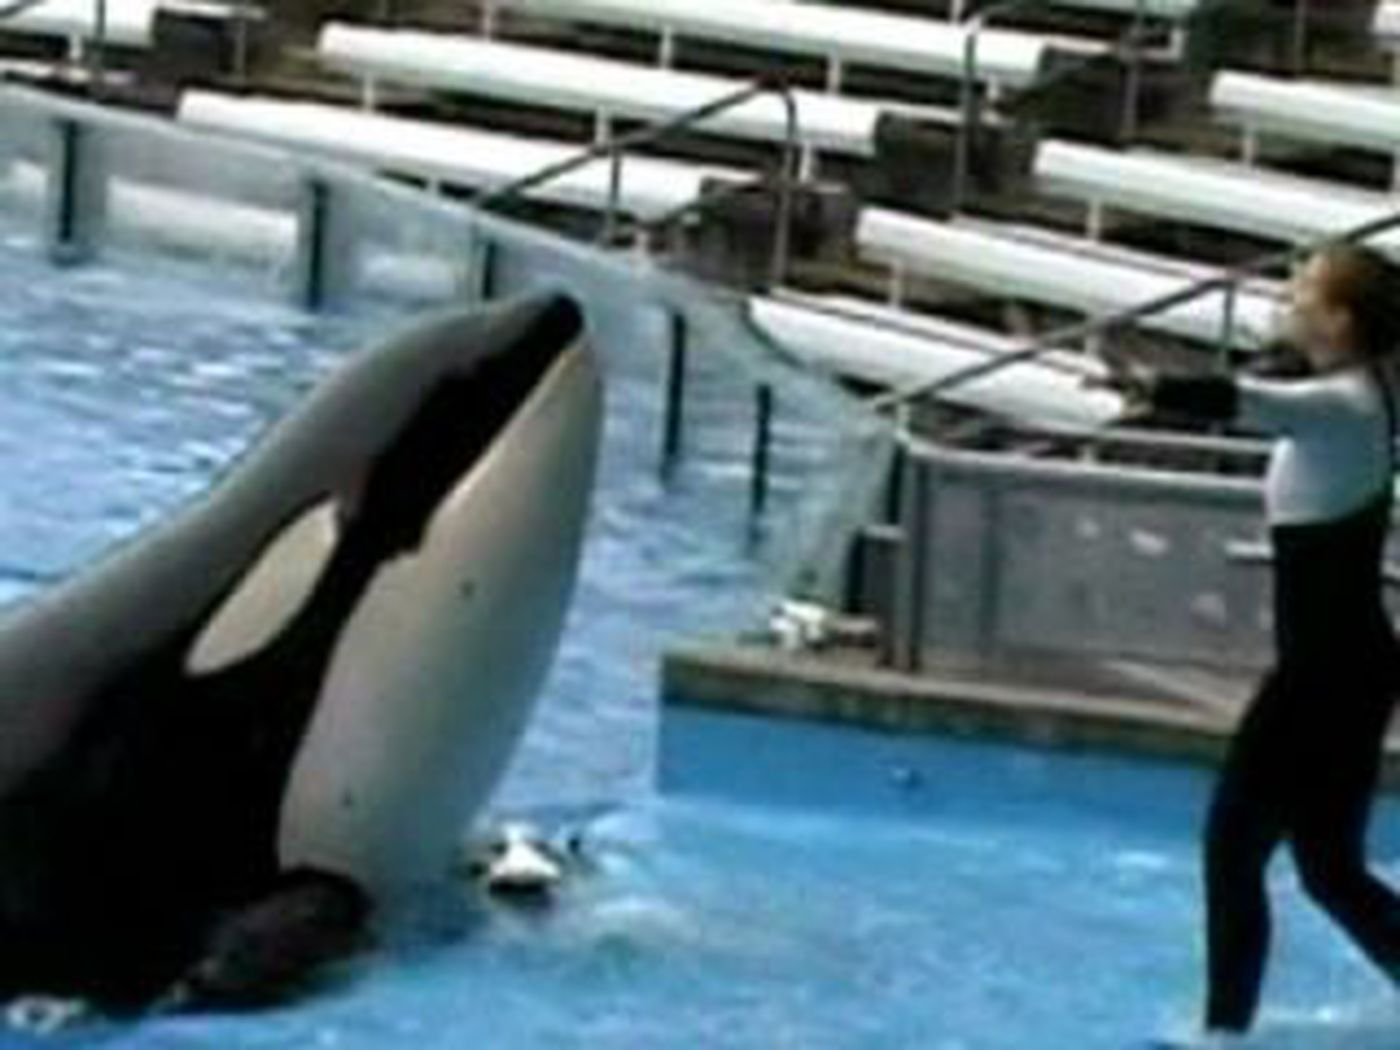 Killer whale show returns to SeaWorld days after orca kills trainer